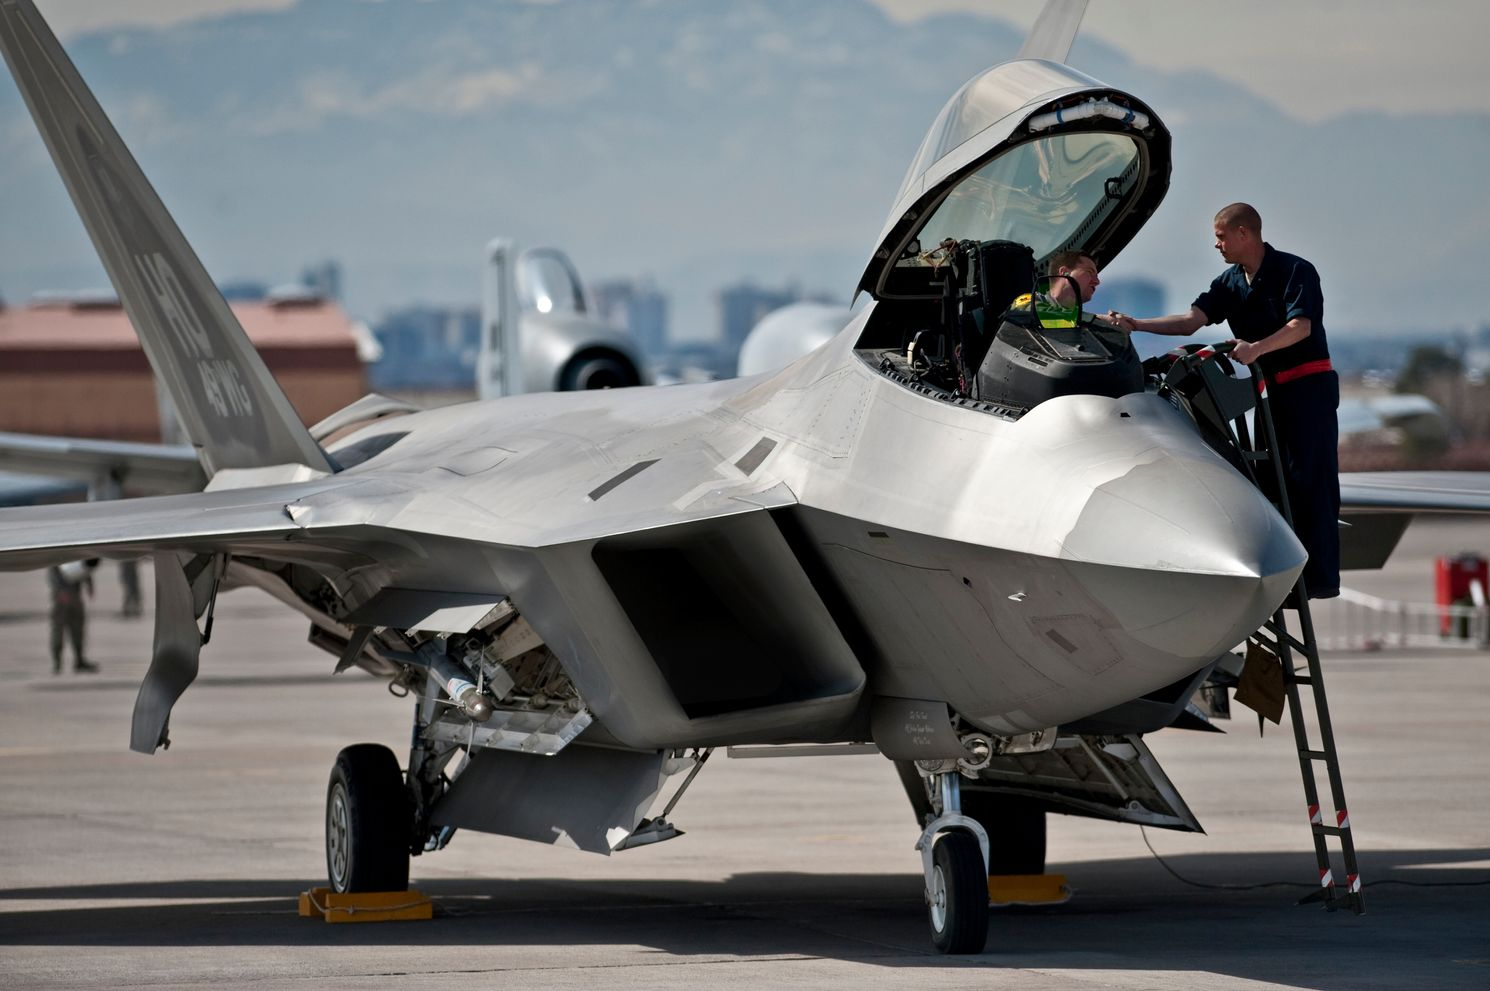 One of America's Top Allies Proved an F-22 Can Be Killed in Combat